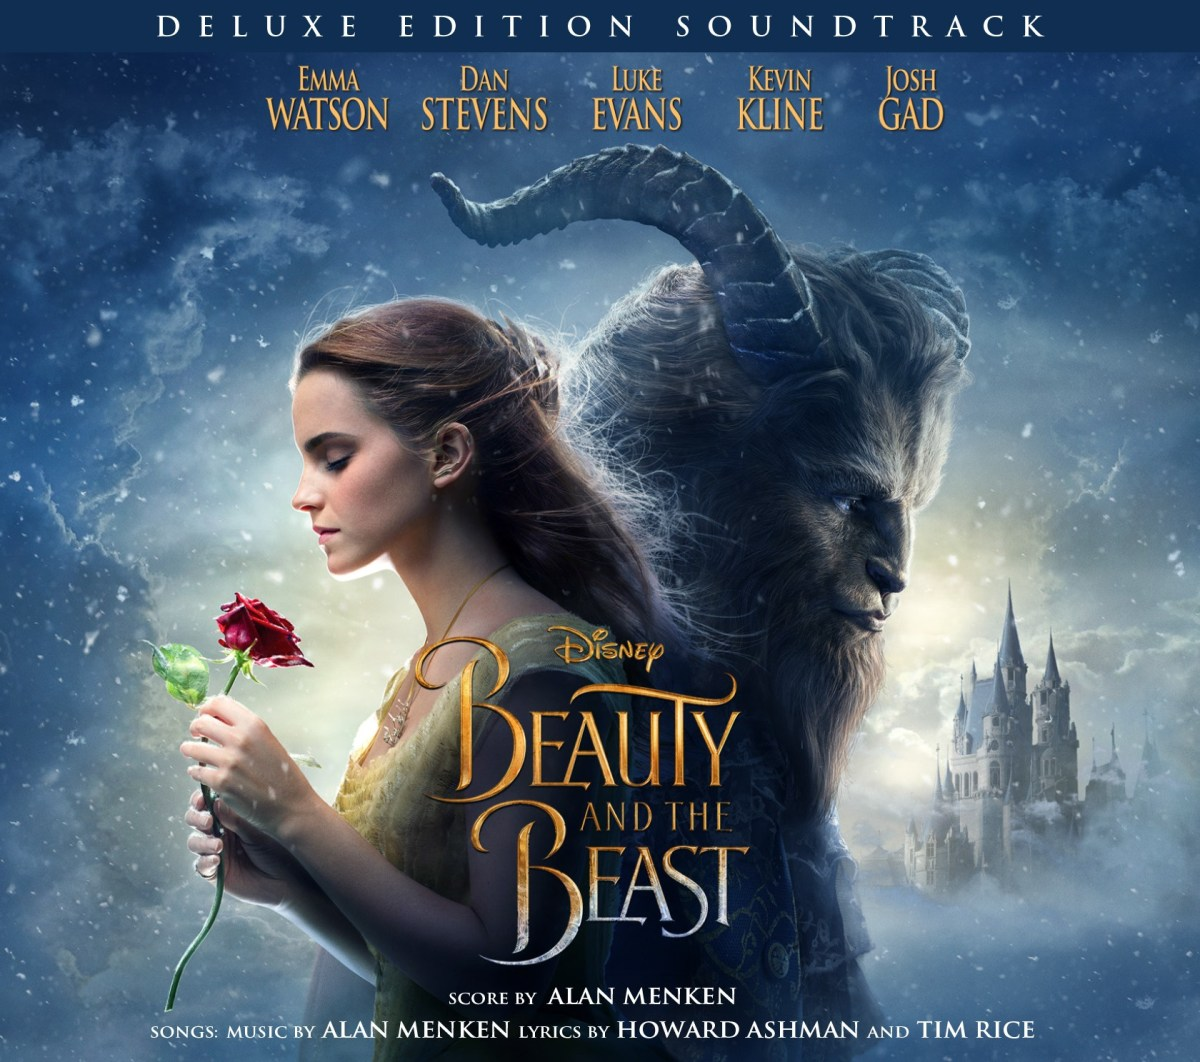 Celine Dion to Perform Original Song 'How Does a Moment Last Forever' for Disney's 'Beauty and the Beast'